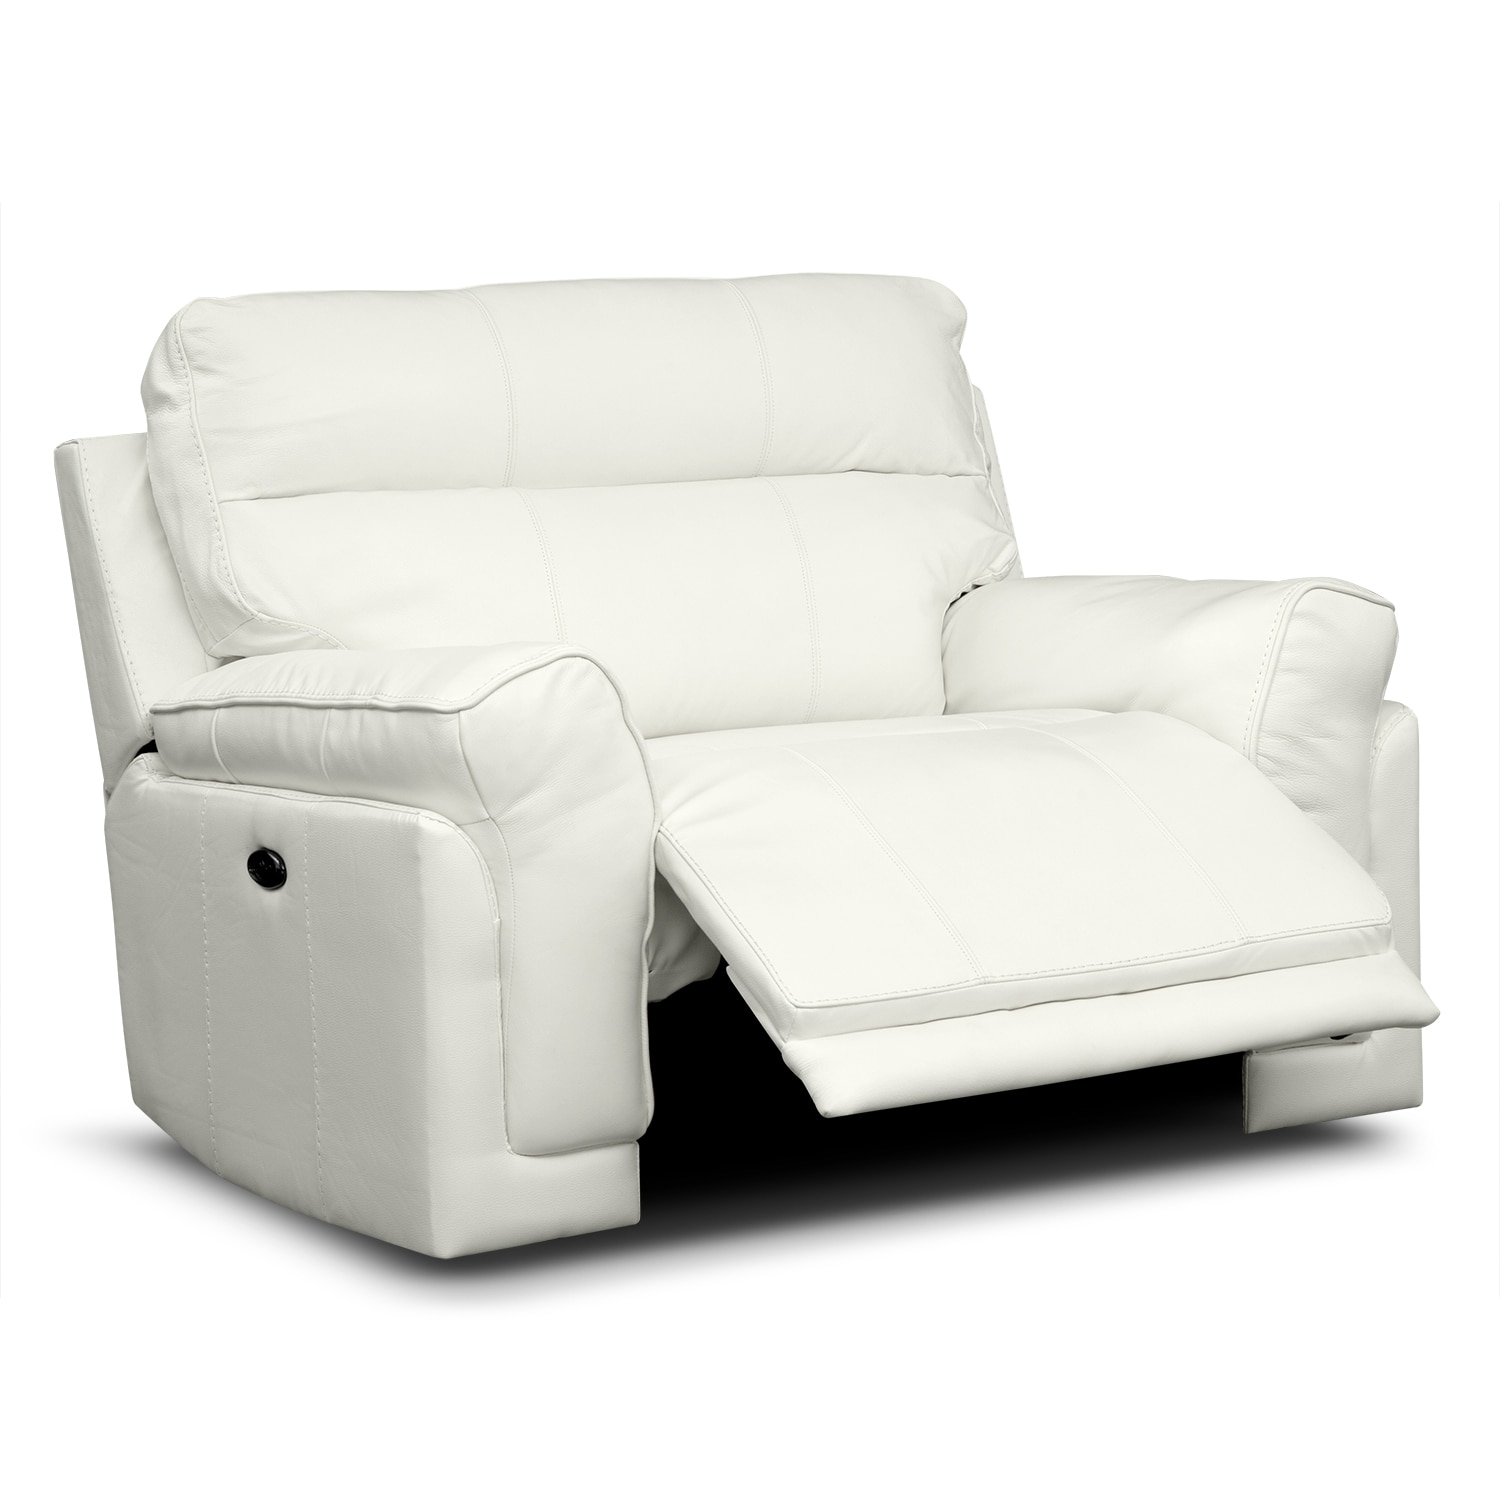 Antonio White Leather Power Recliner Furniturecom